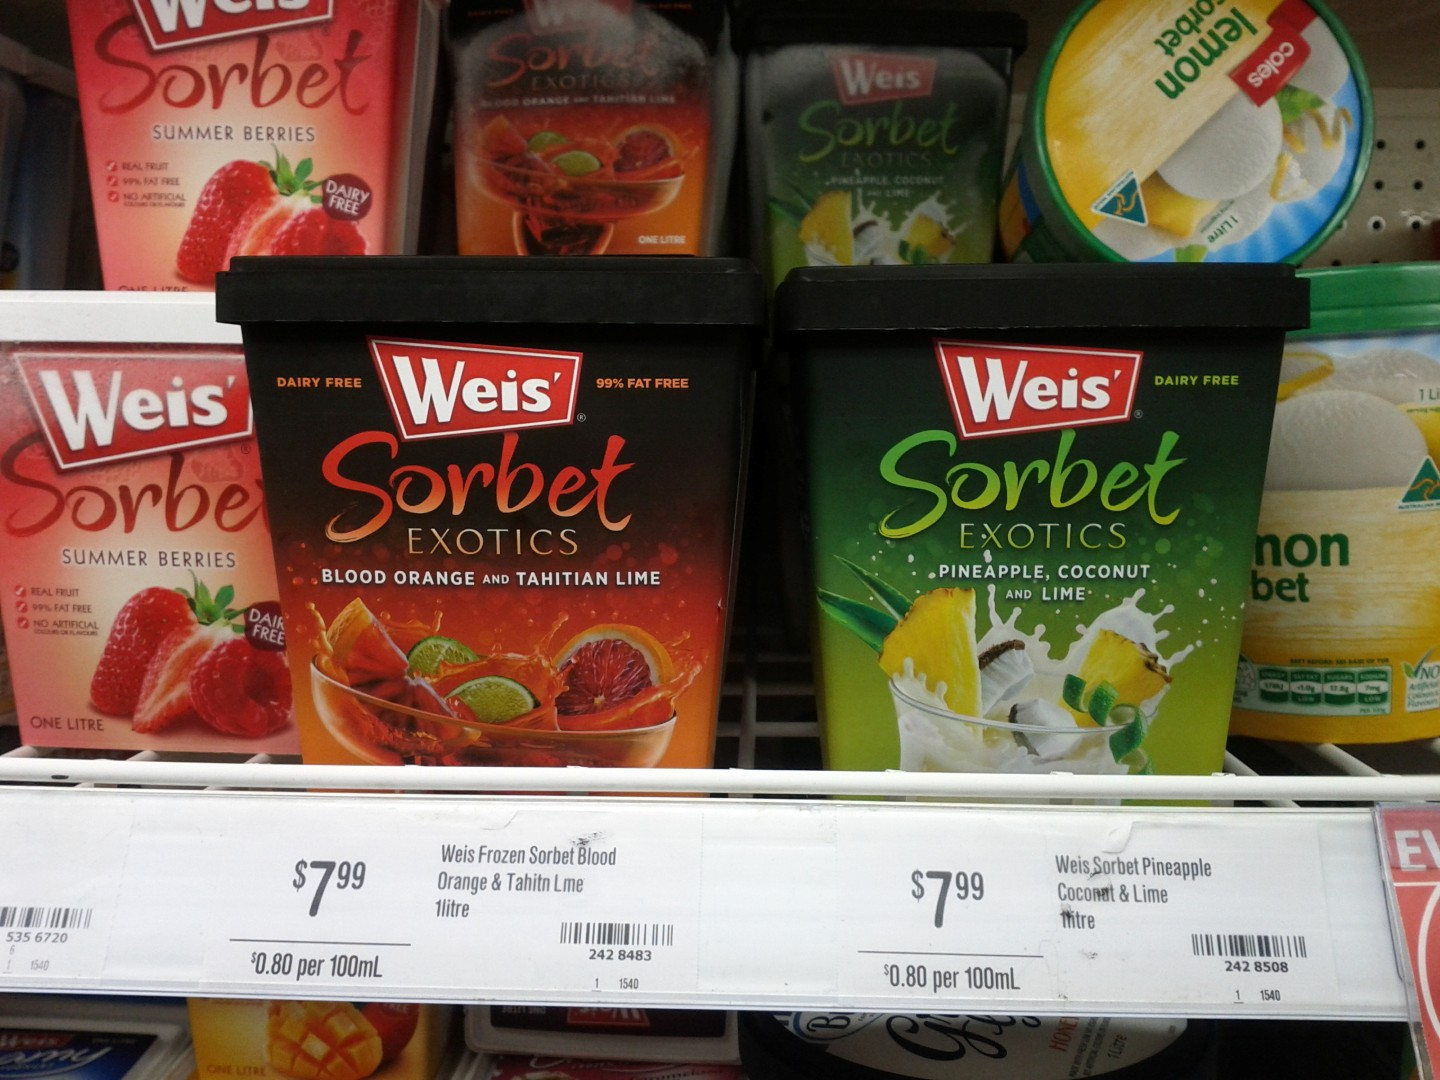 Weis Sorbet Exotics 1L Blood Orange & Tahitian Lime, Pineapple Coconut & Lime